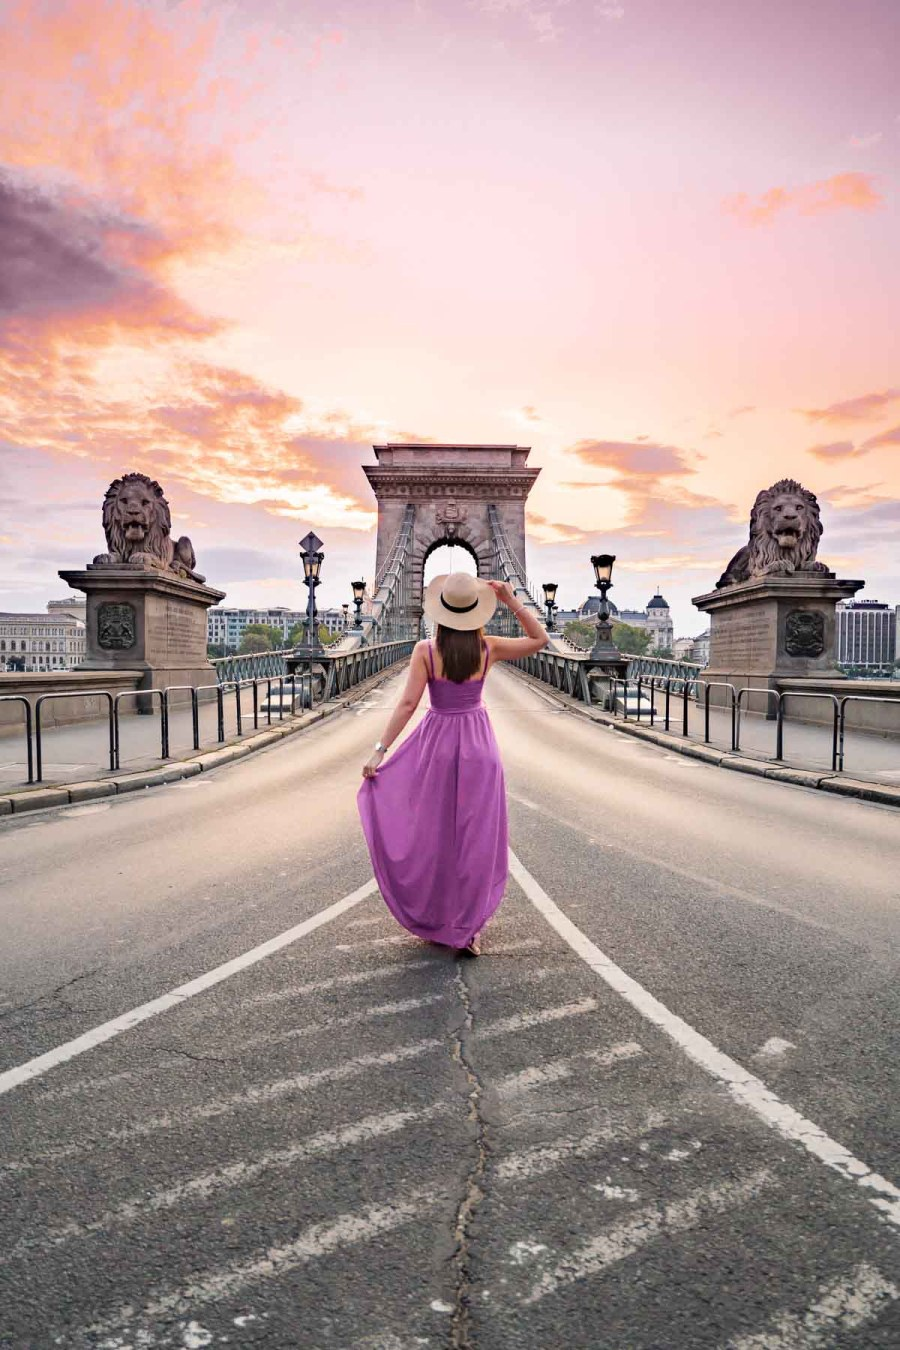 Girl in a purple dress standing in front of the Szechenyi Chain Bridge during sunrise in Budapest